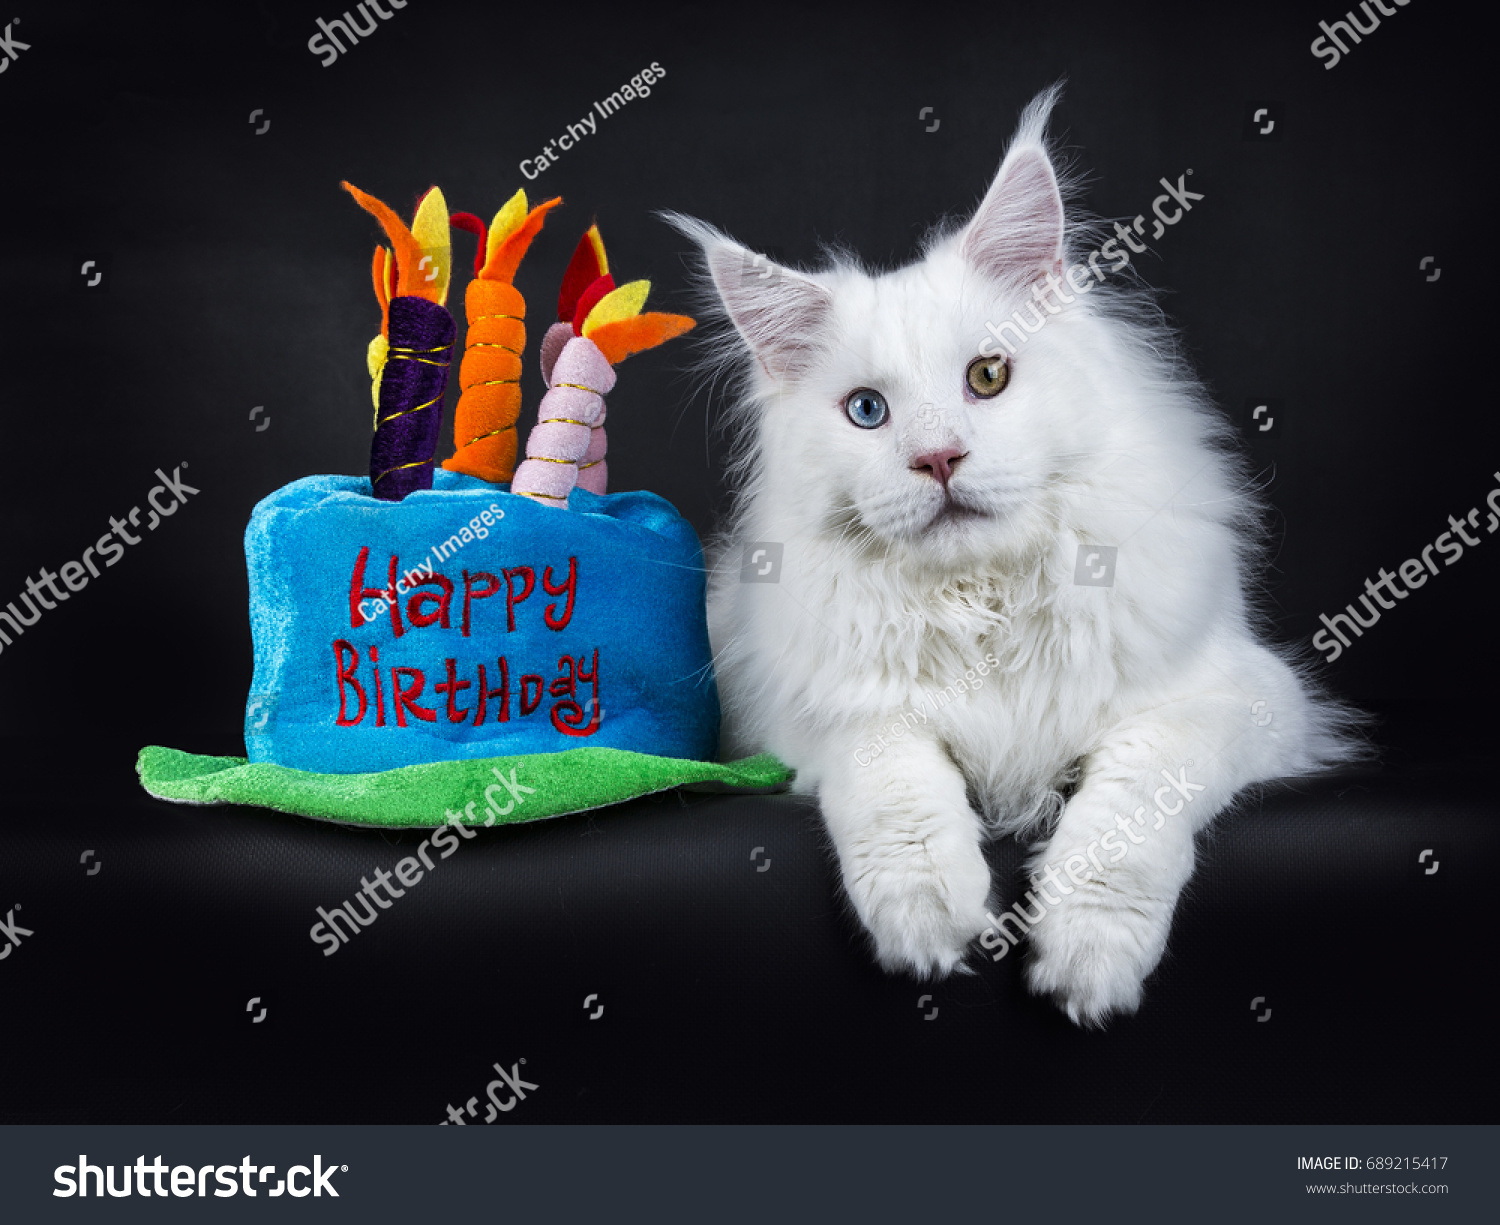 Birthday Cake For Pet Cat - This cat eating a birthday cake is everything you need in life